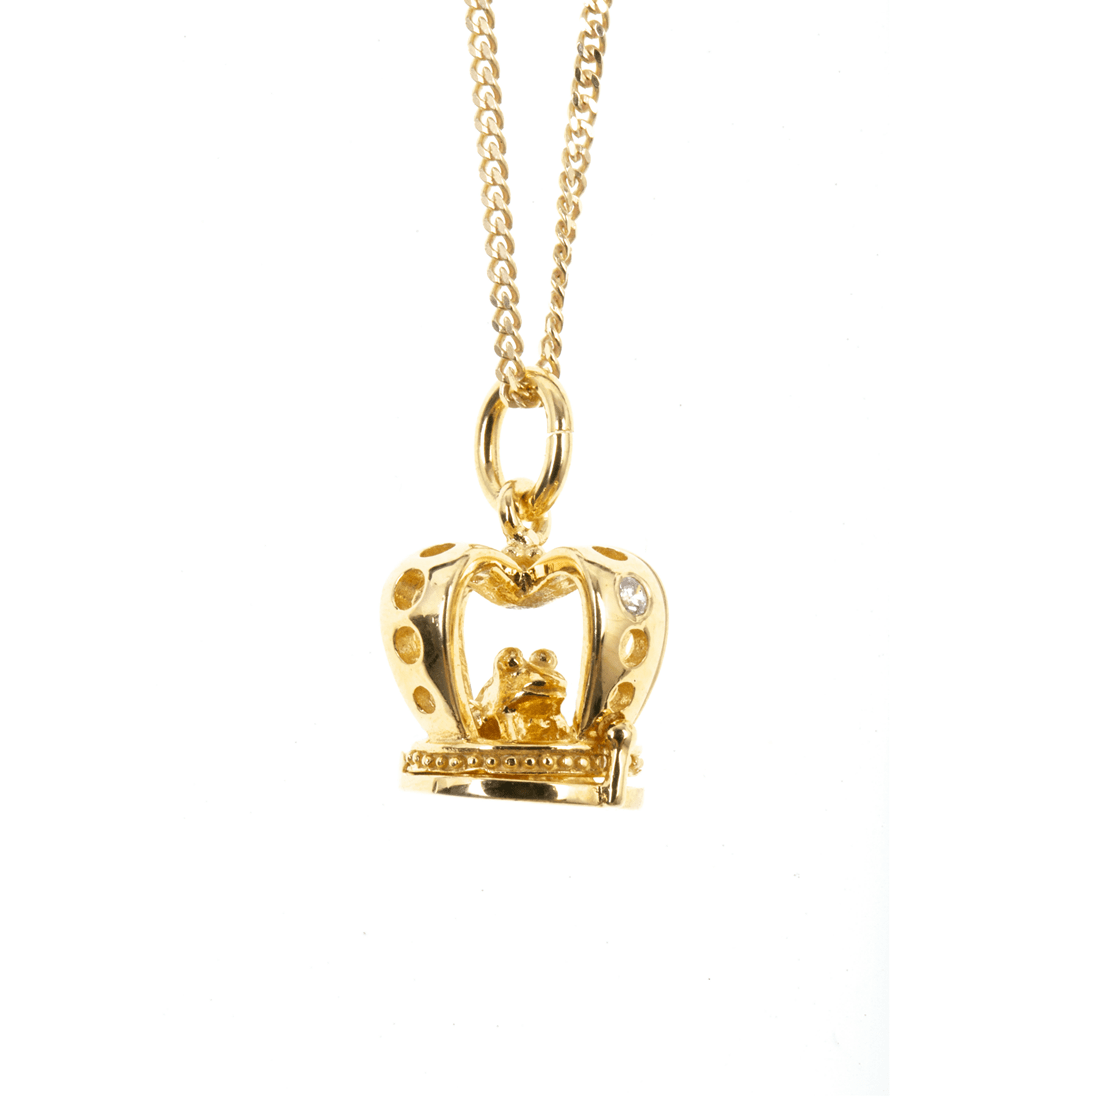 Gold Magical Charm Necklace - Wealth